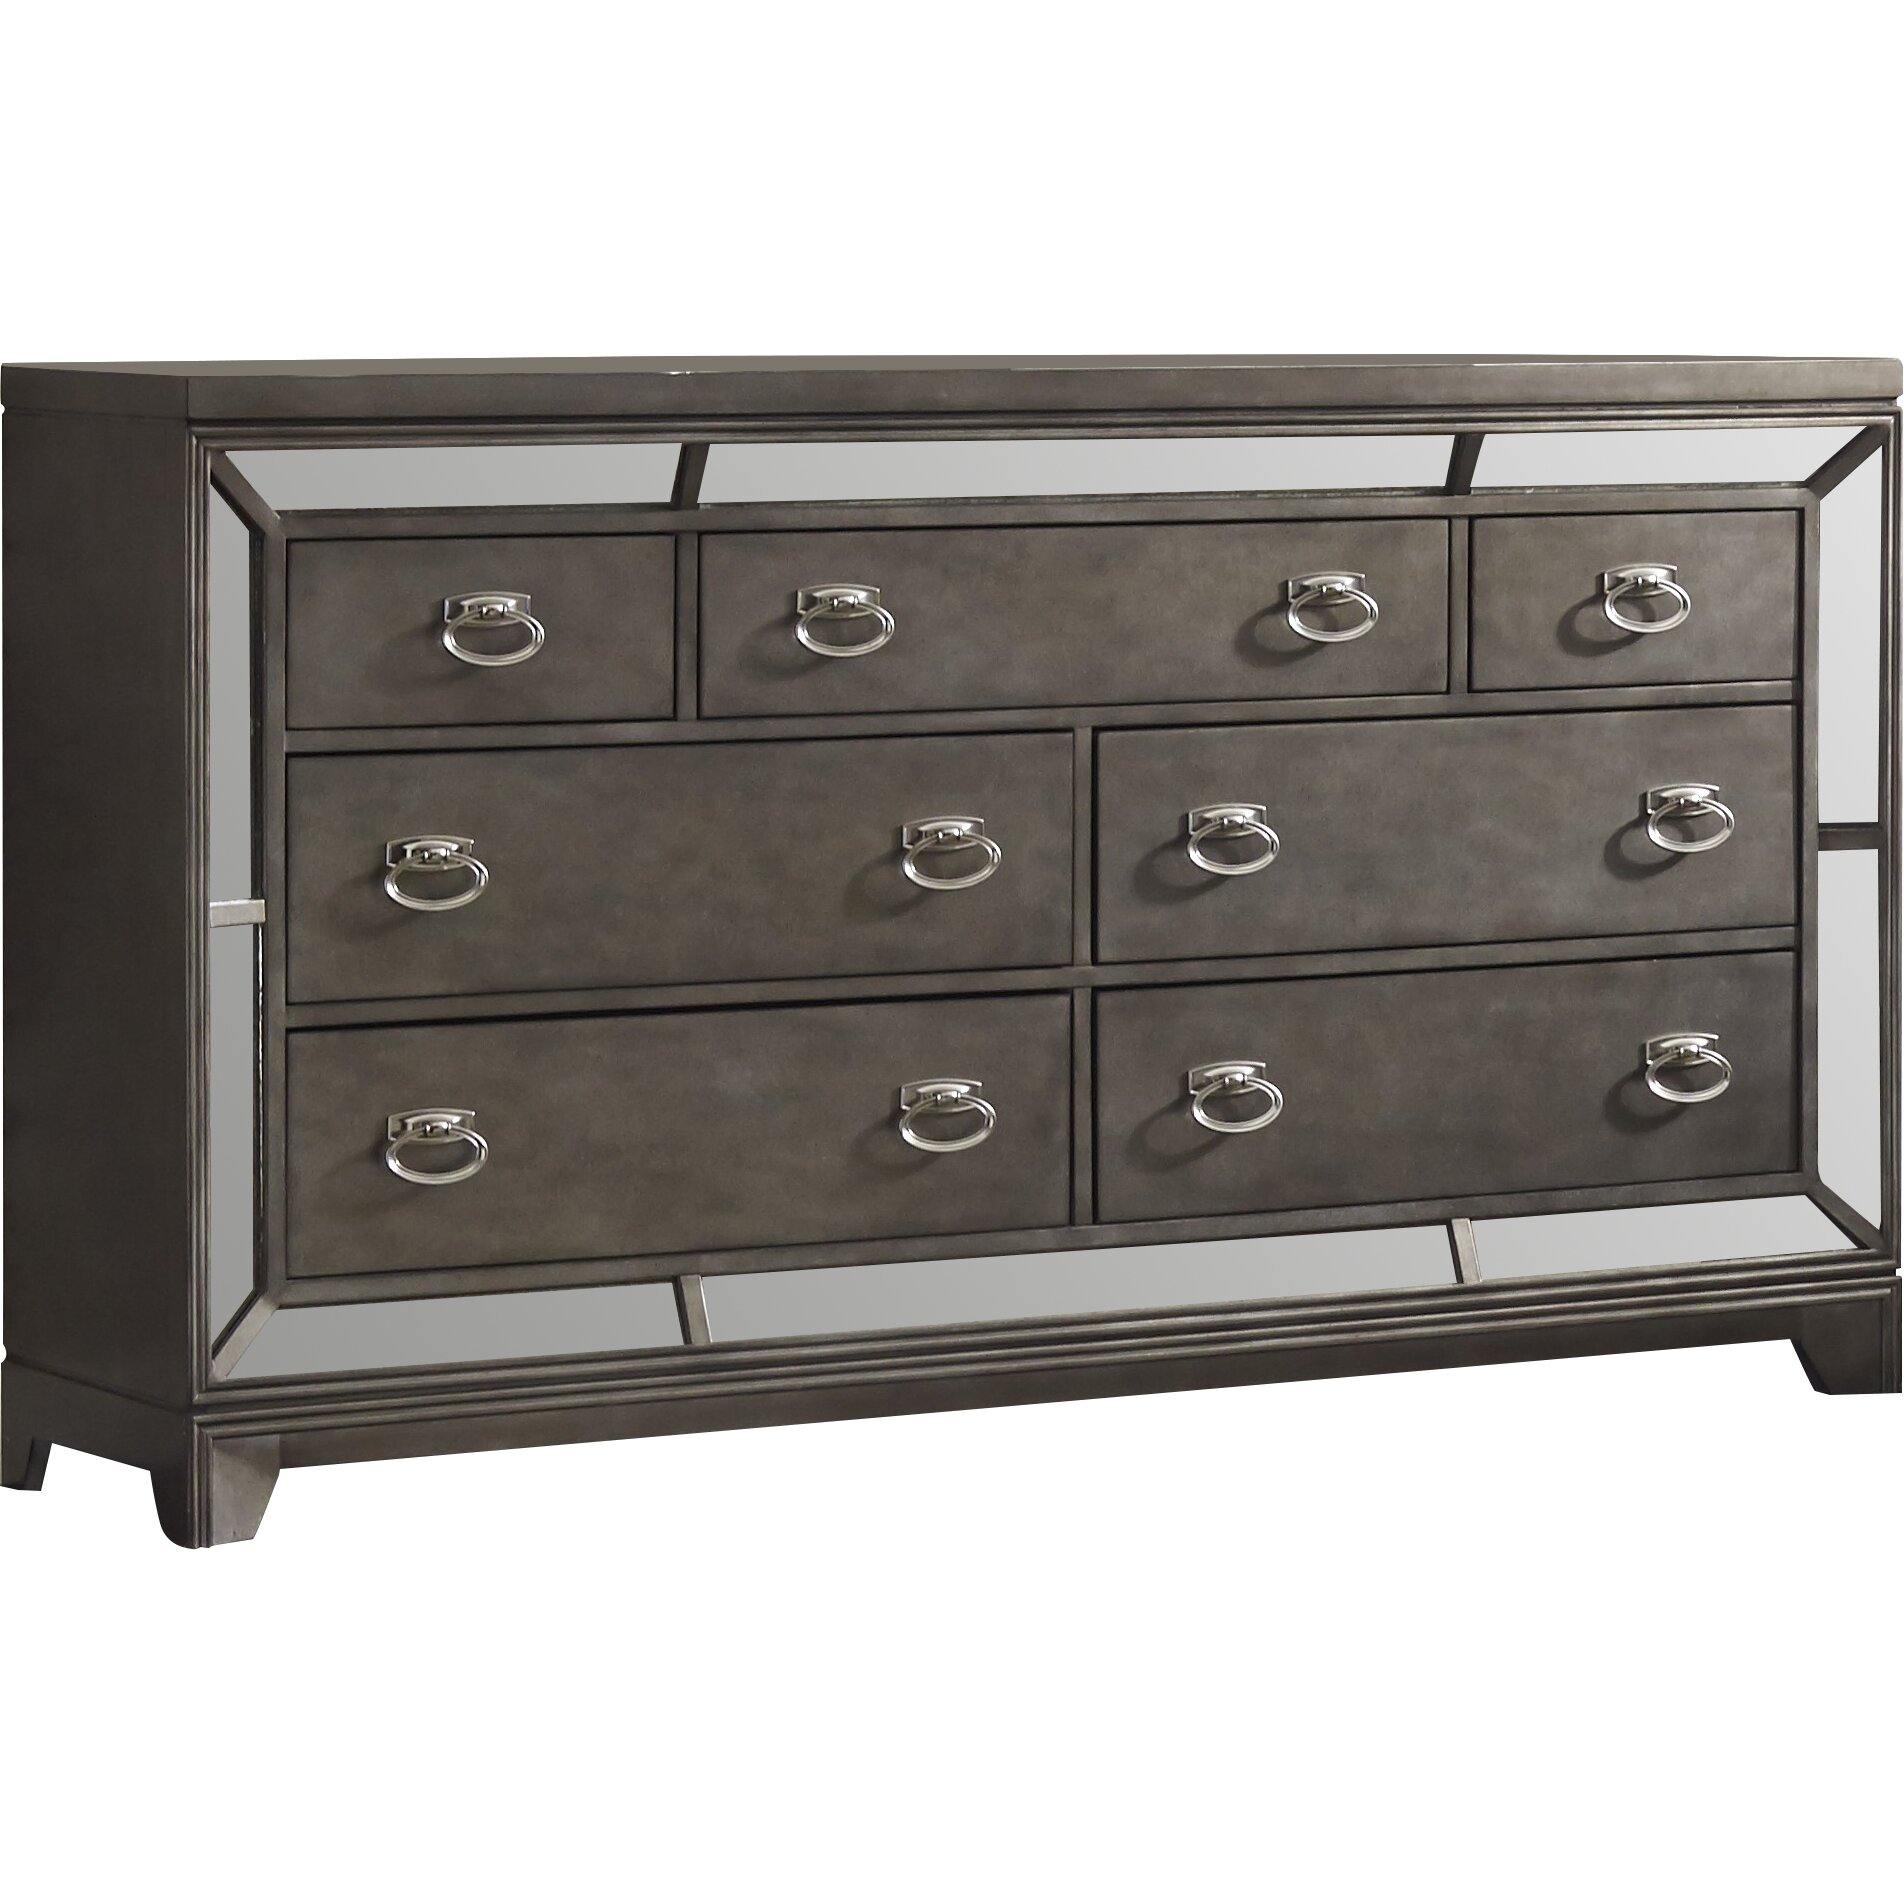 Avalon furniture lenox 7 drawer dresser reviews wayfair for Furniture 7 reviews